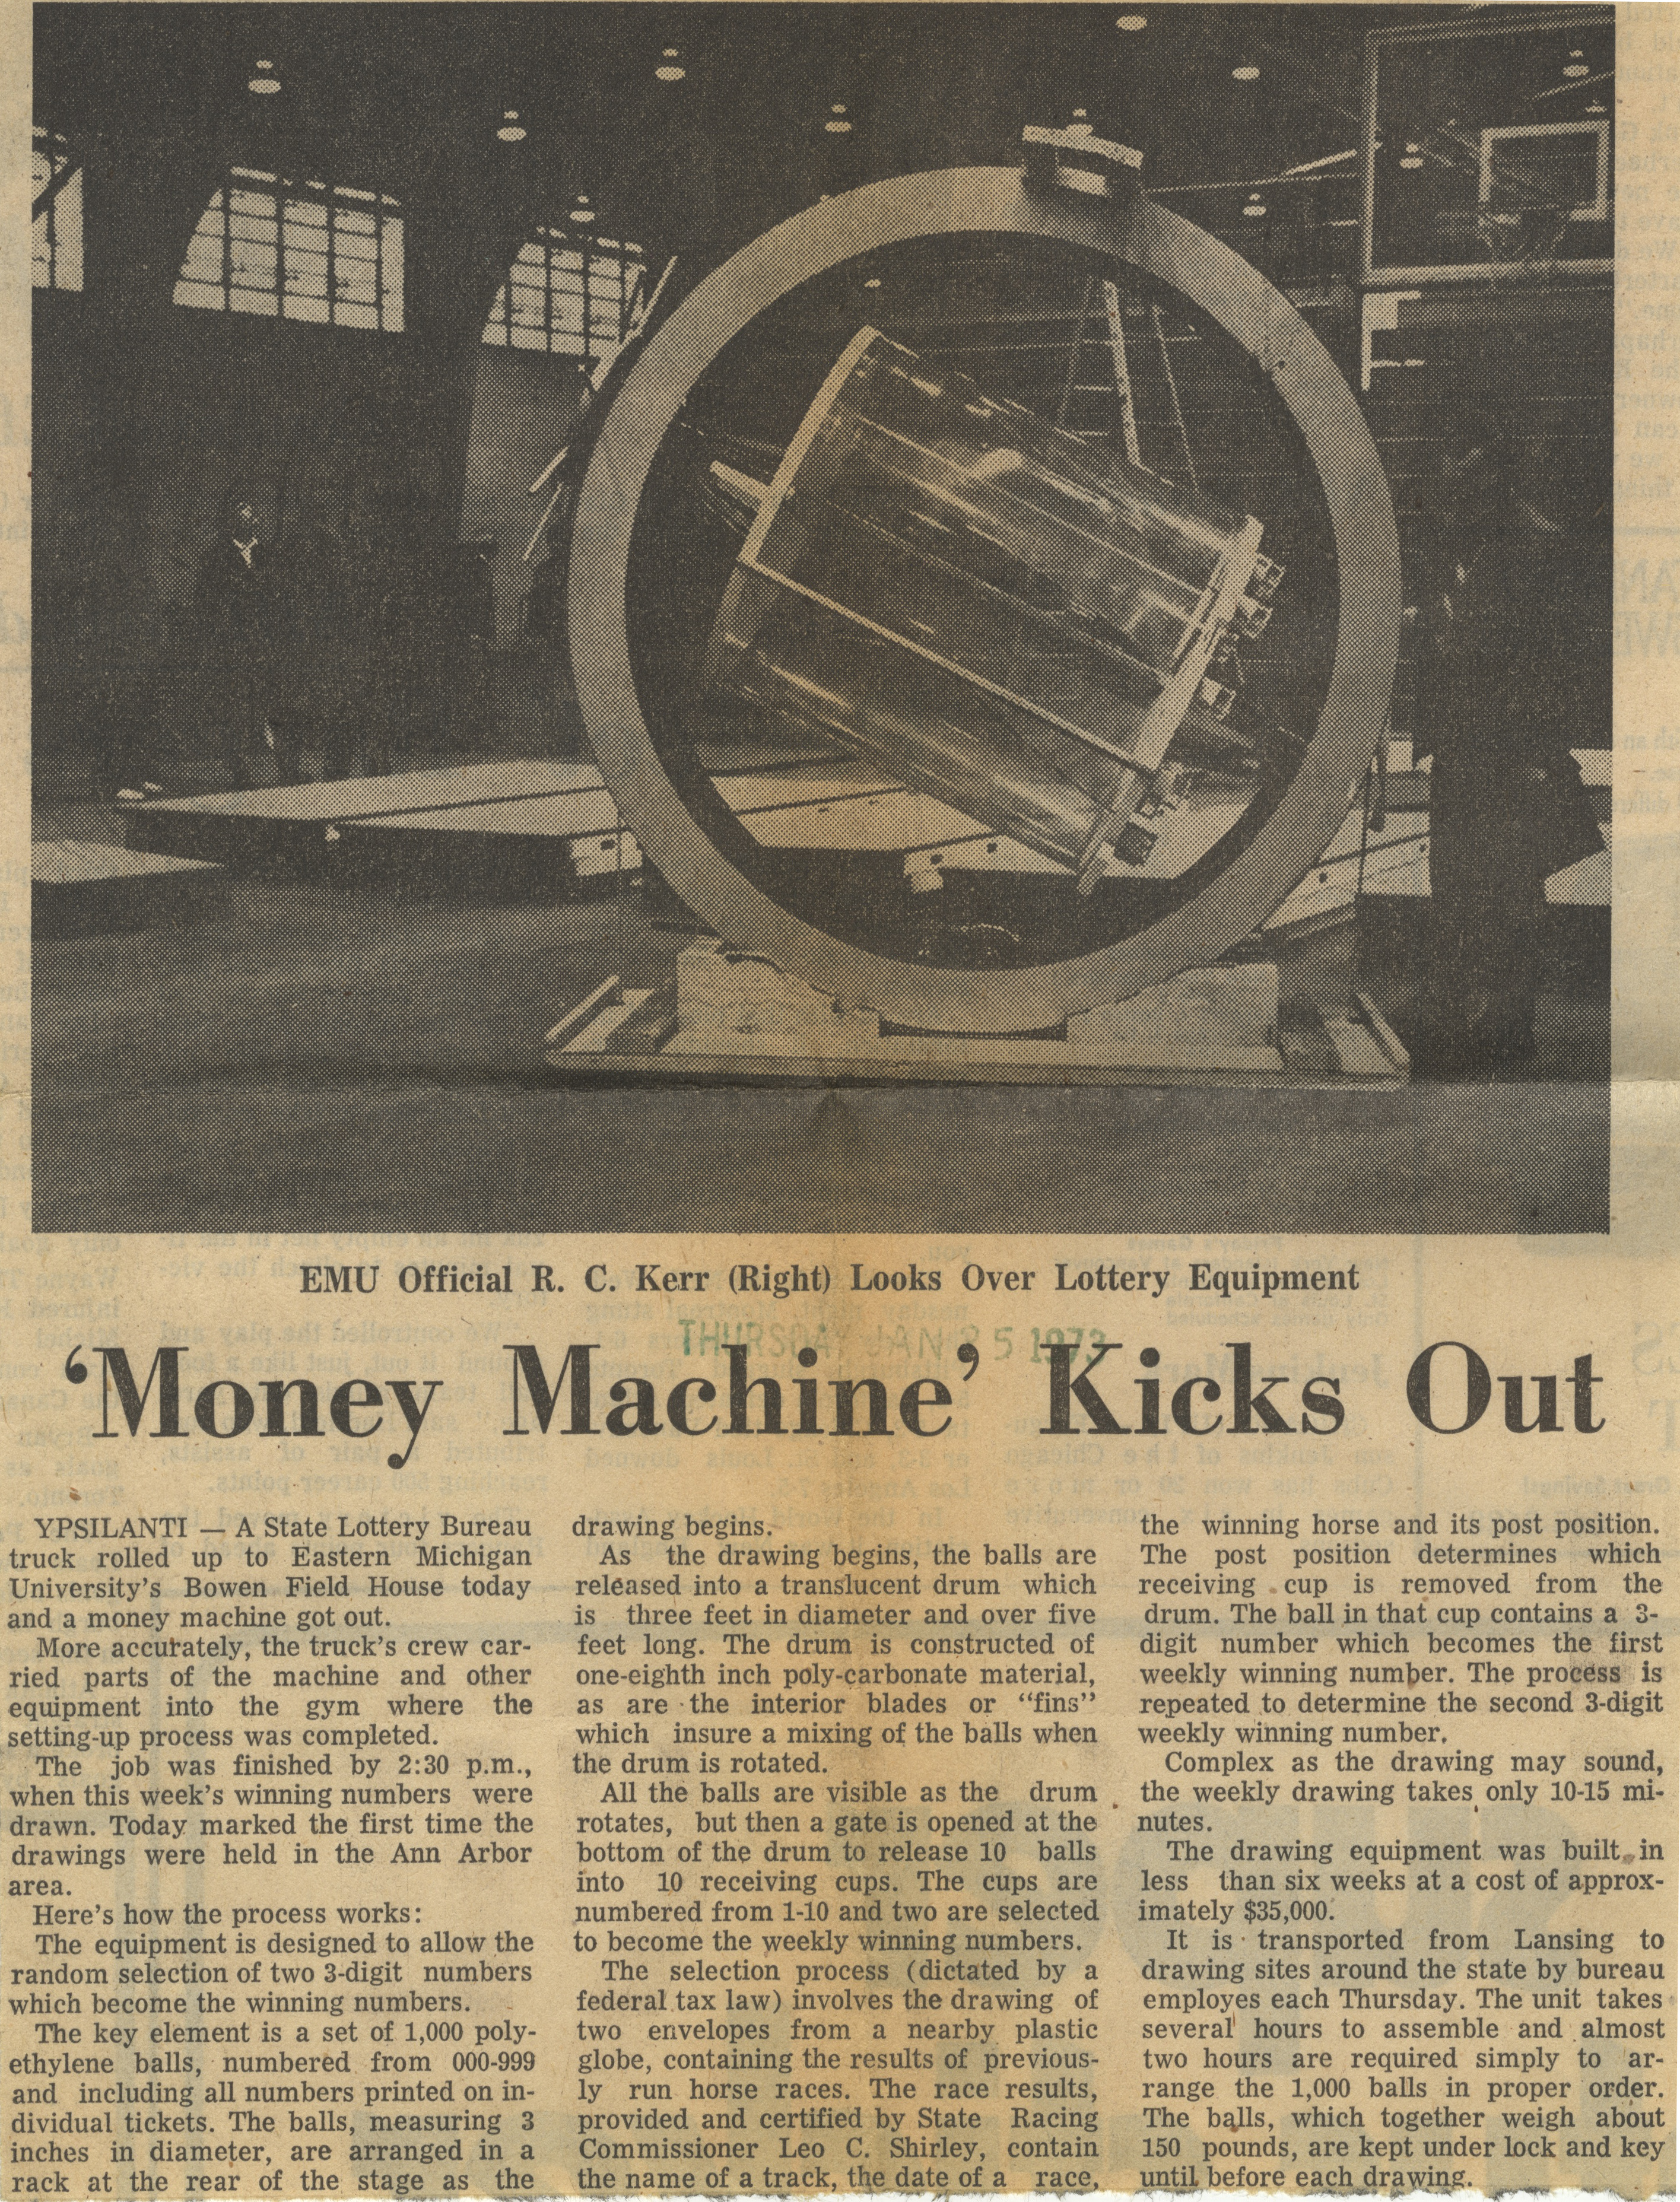 Money Machine Kicks Out image